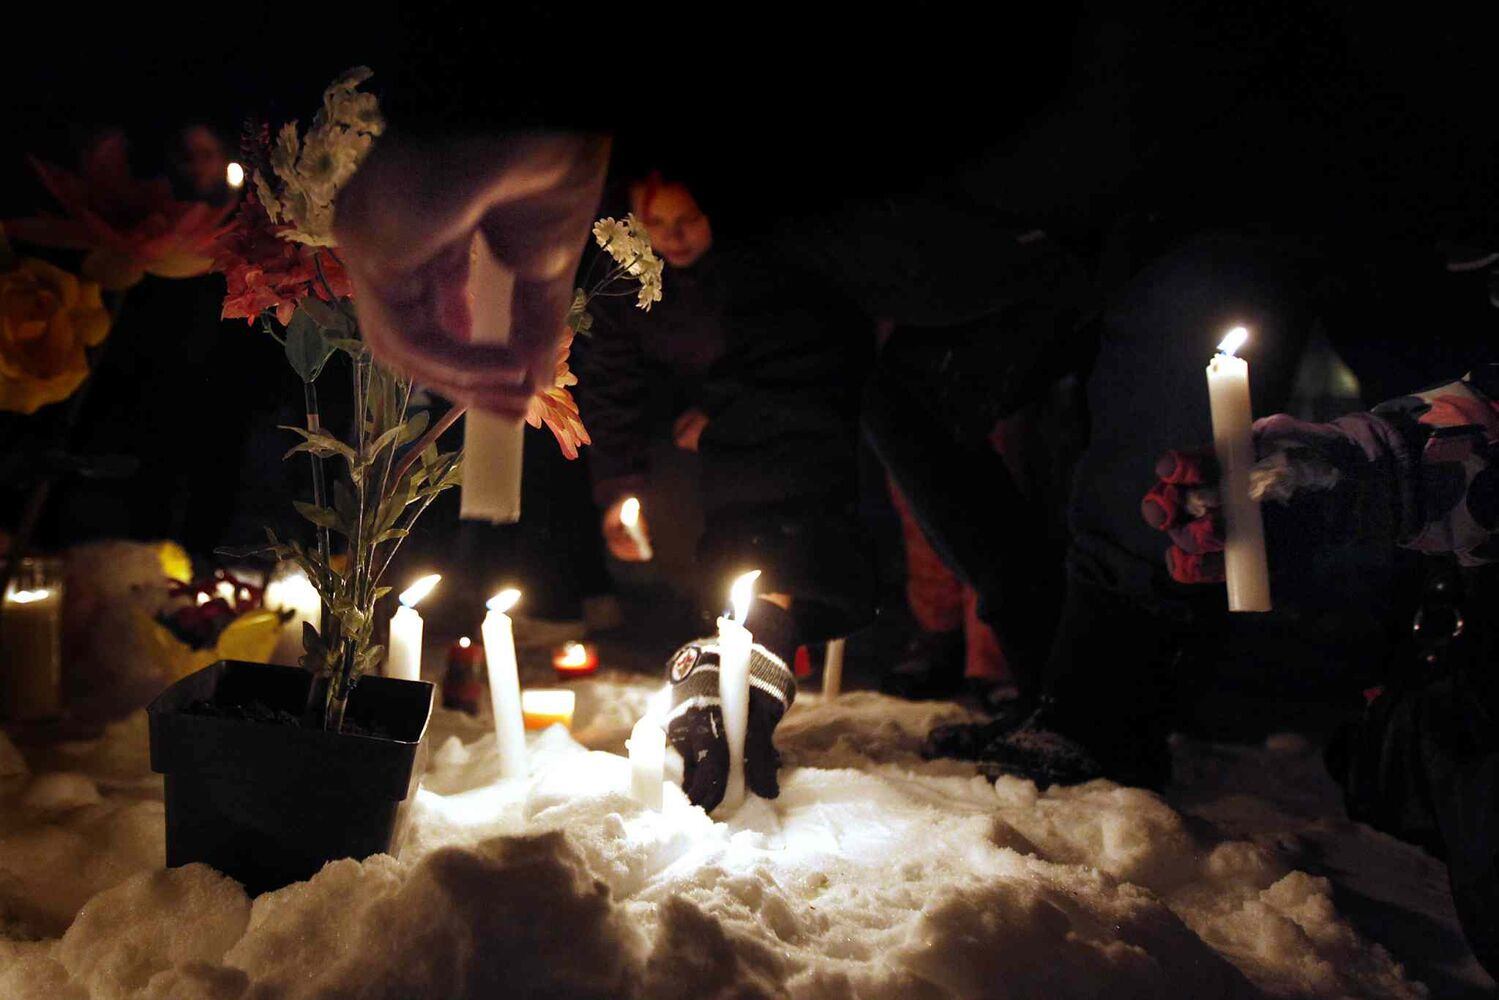 Friends and family place candles in the snow at a vigil for Nadia Fiddler in the courtyard of a Manitoba Housing complex on Doncaster Sunday, January 25, 2013. Although not confirmed by police, it is alleged that Fiddler was found dead in the courtyard Saturday.